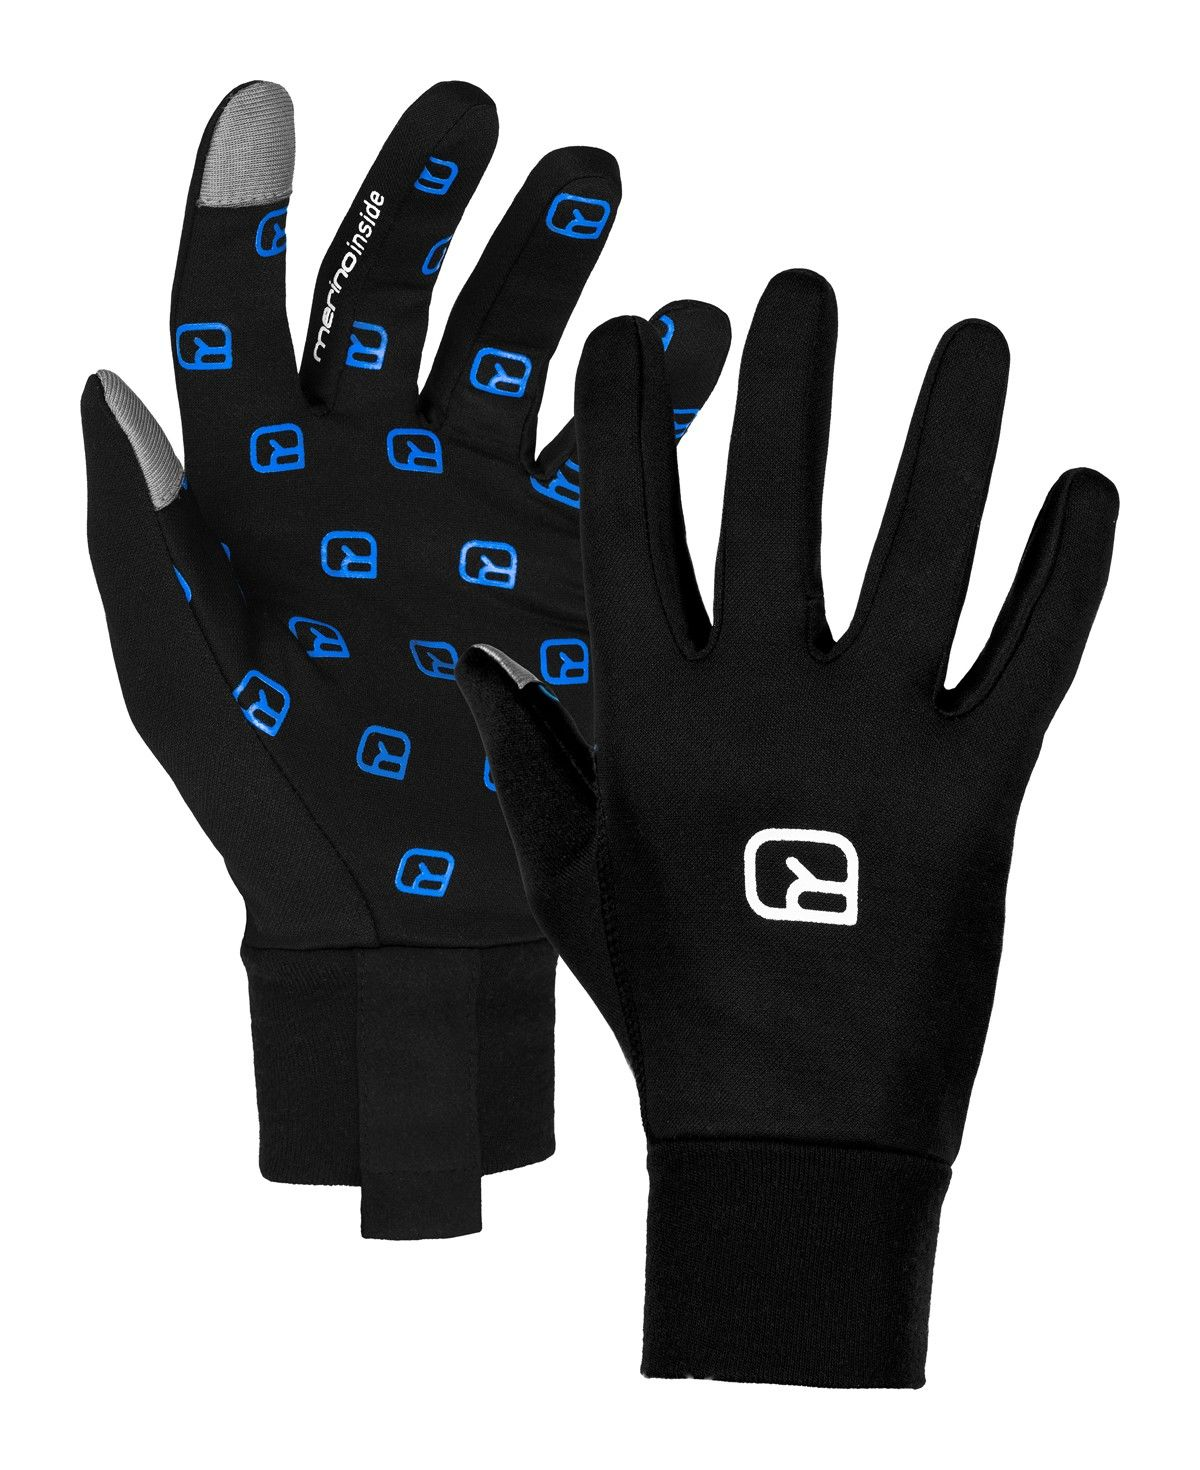 Ortovox Fleece Merino Smart Glove |  Fingerhandschuh